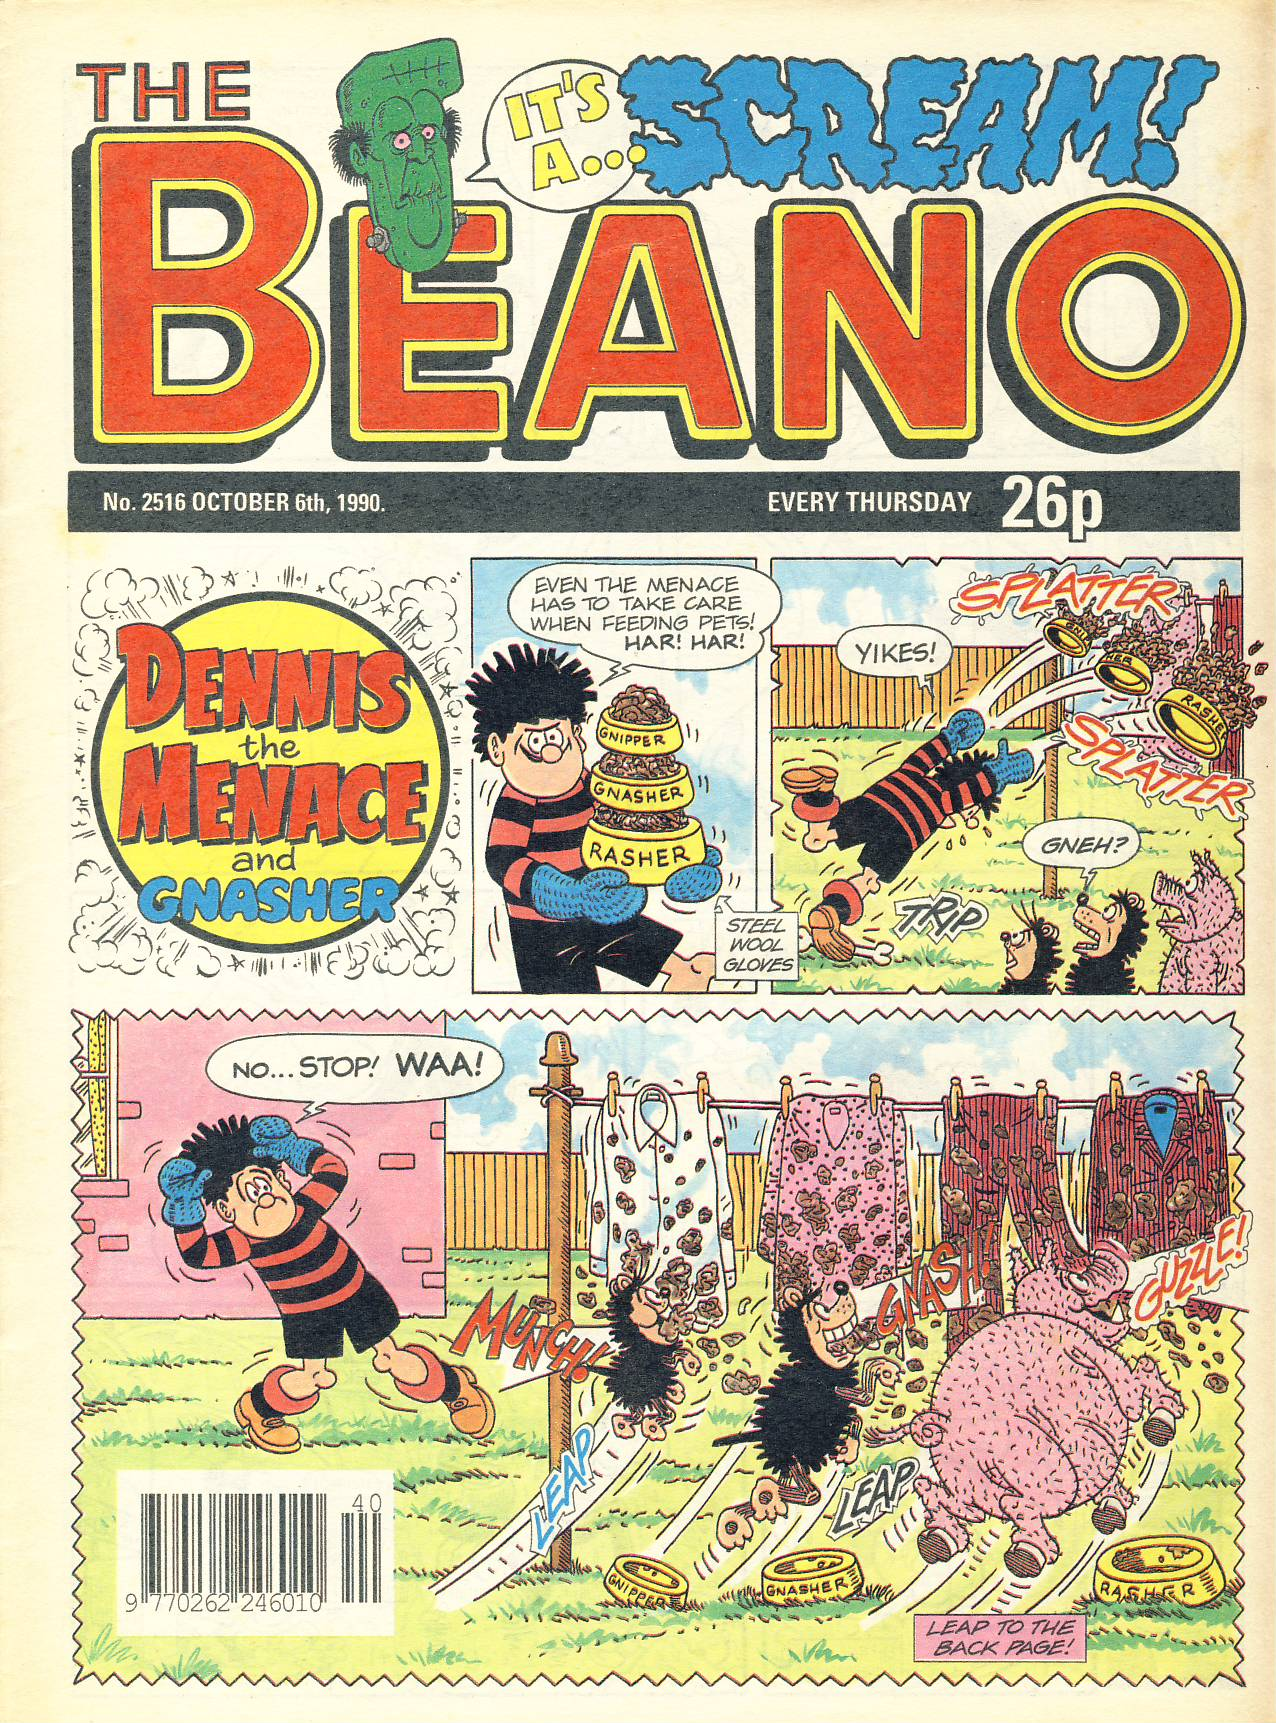 1990 October 6th BEANO vintage comic Good Gift Christmas Present Birthday Anniversary ref308a pre-owned item in good read condition.